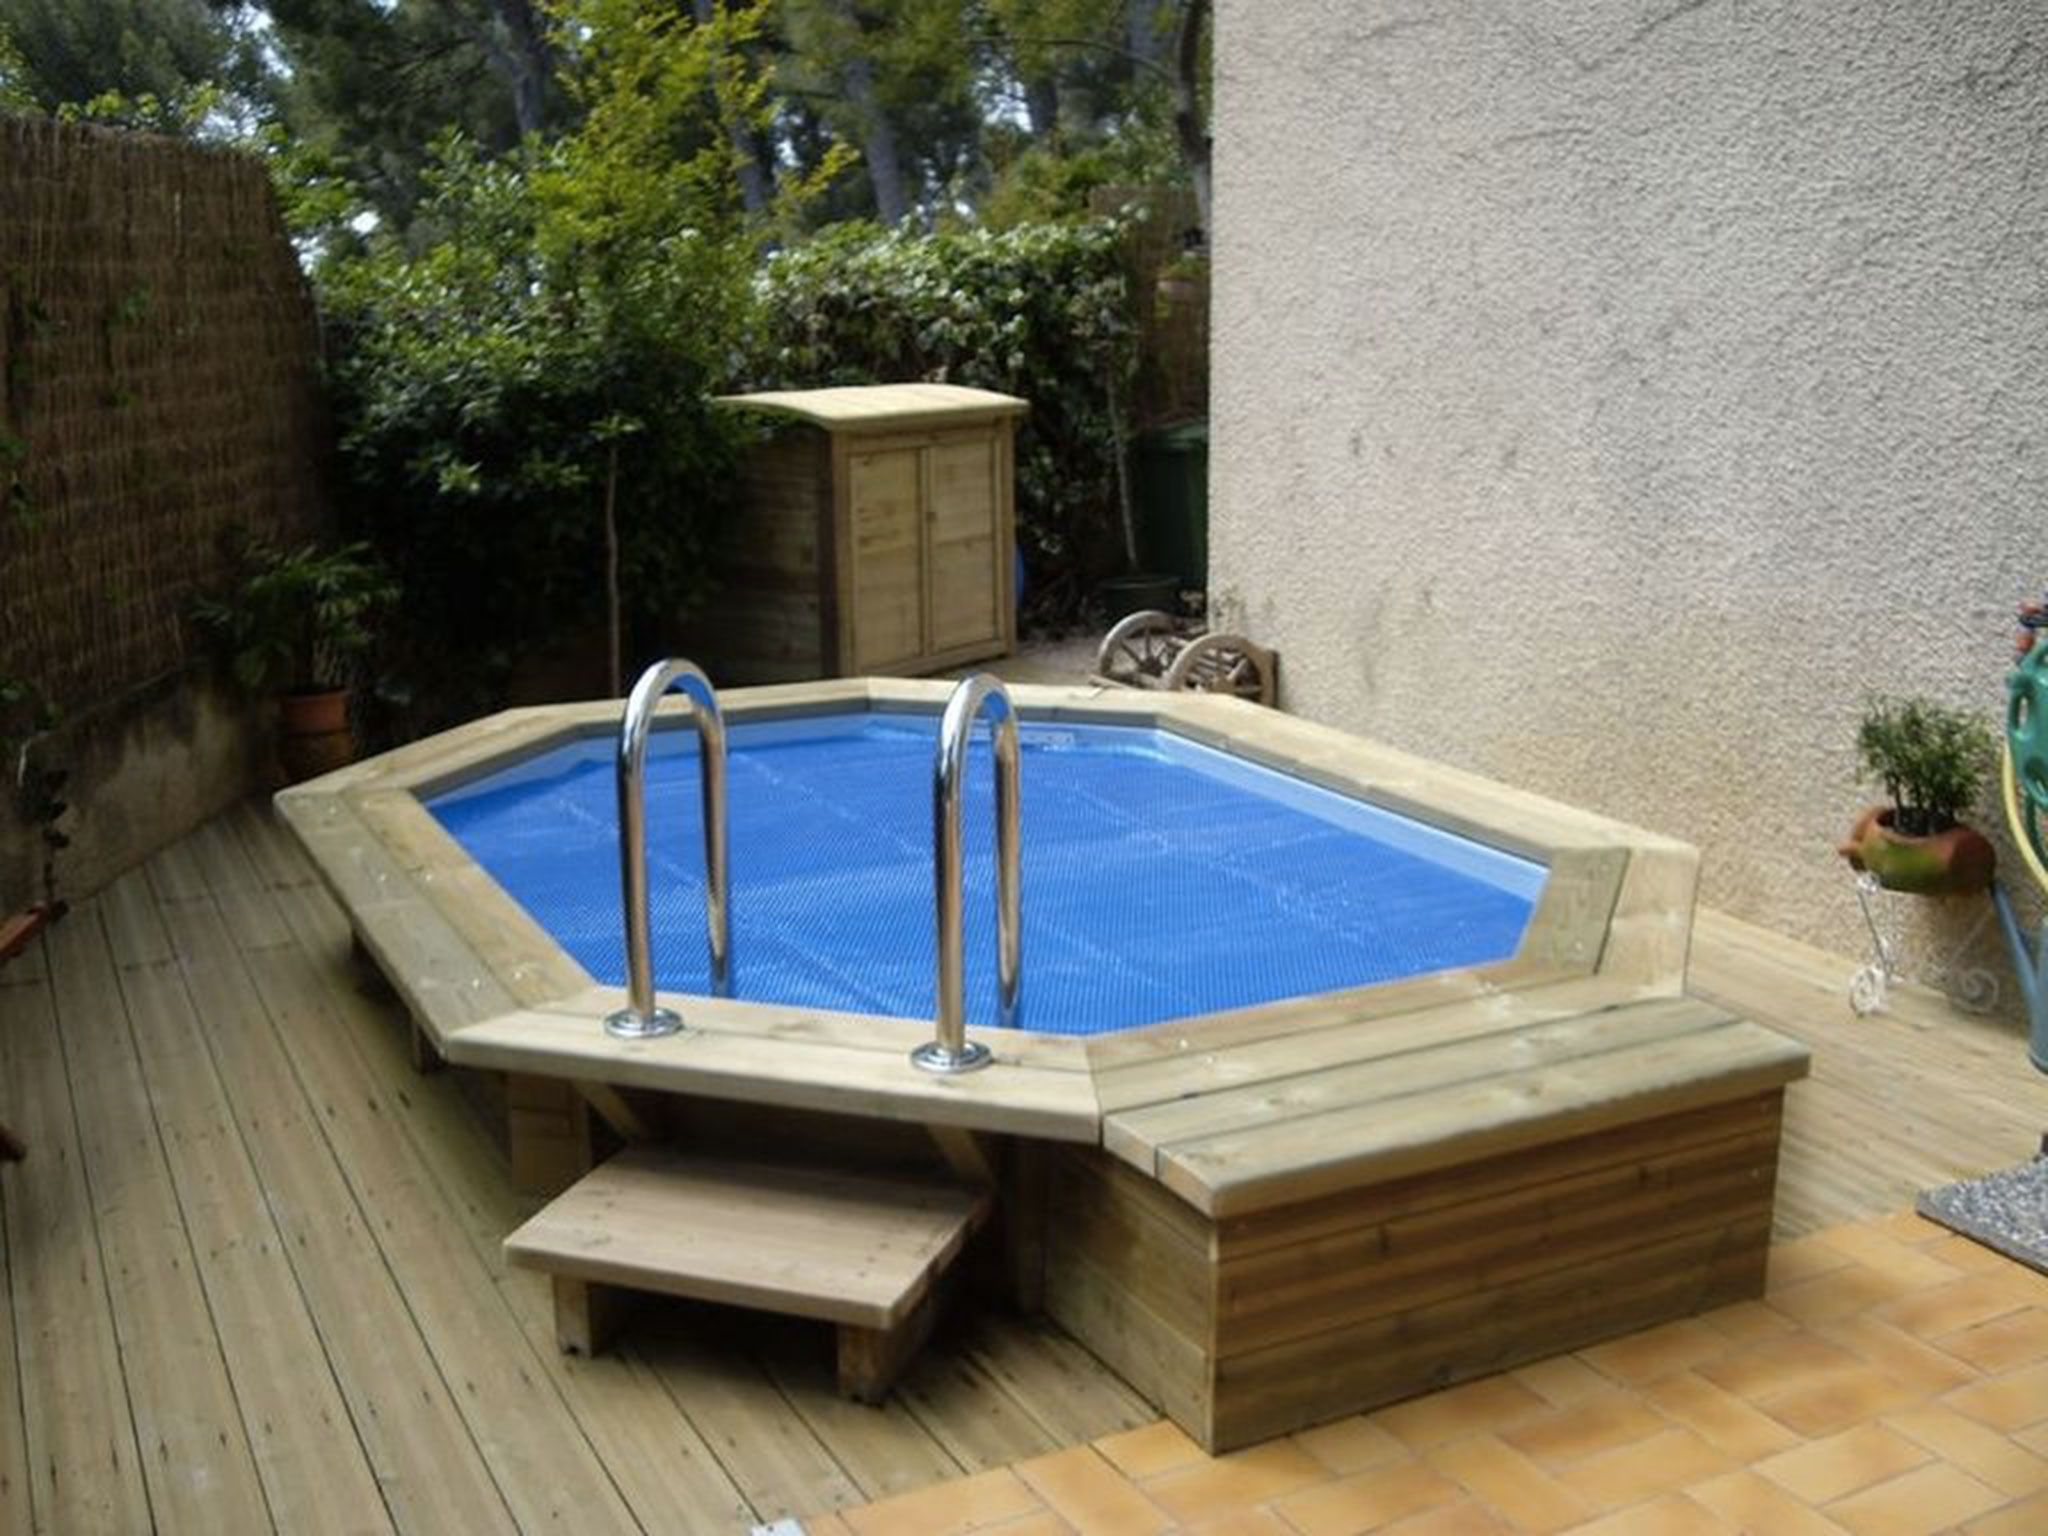 Free piscine semi enterre en bois piscine pinterest with - Entourage piscine hors sol ...